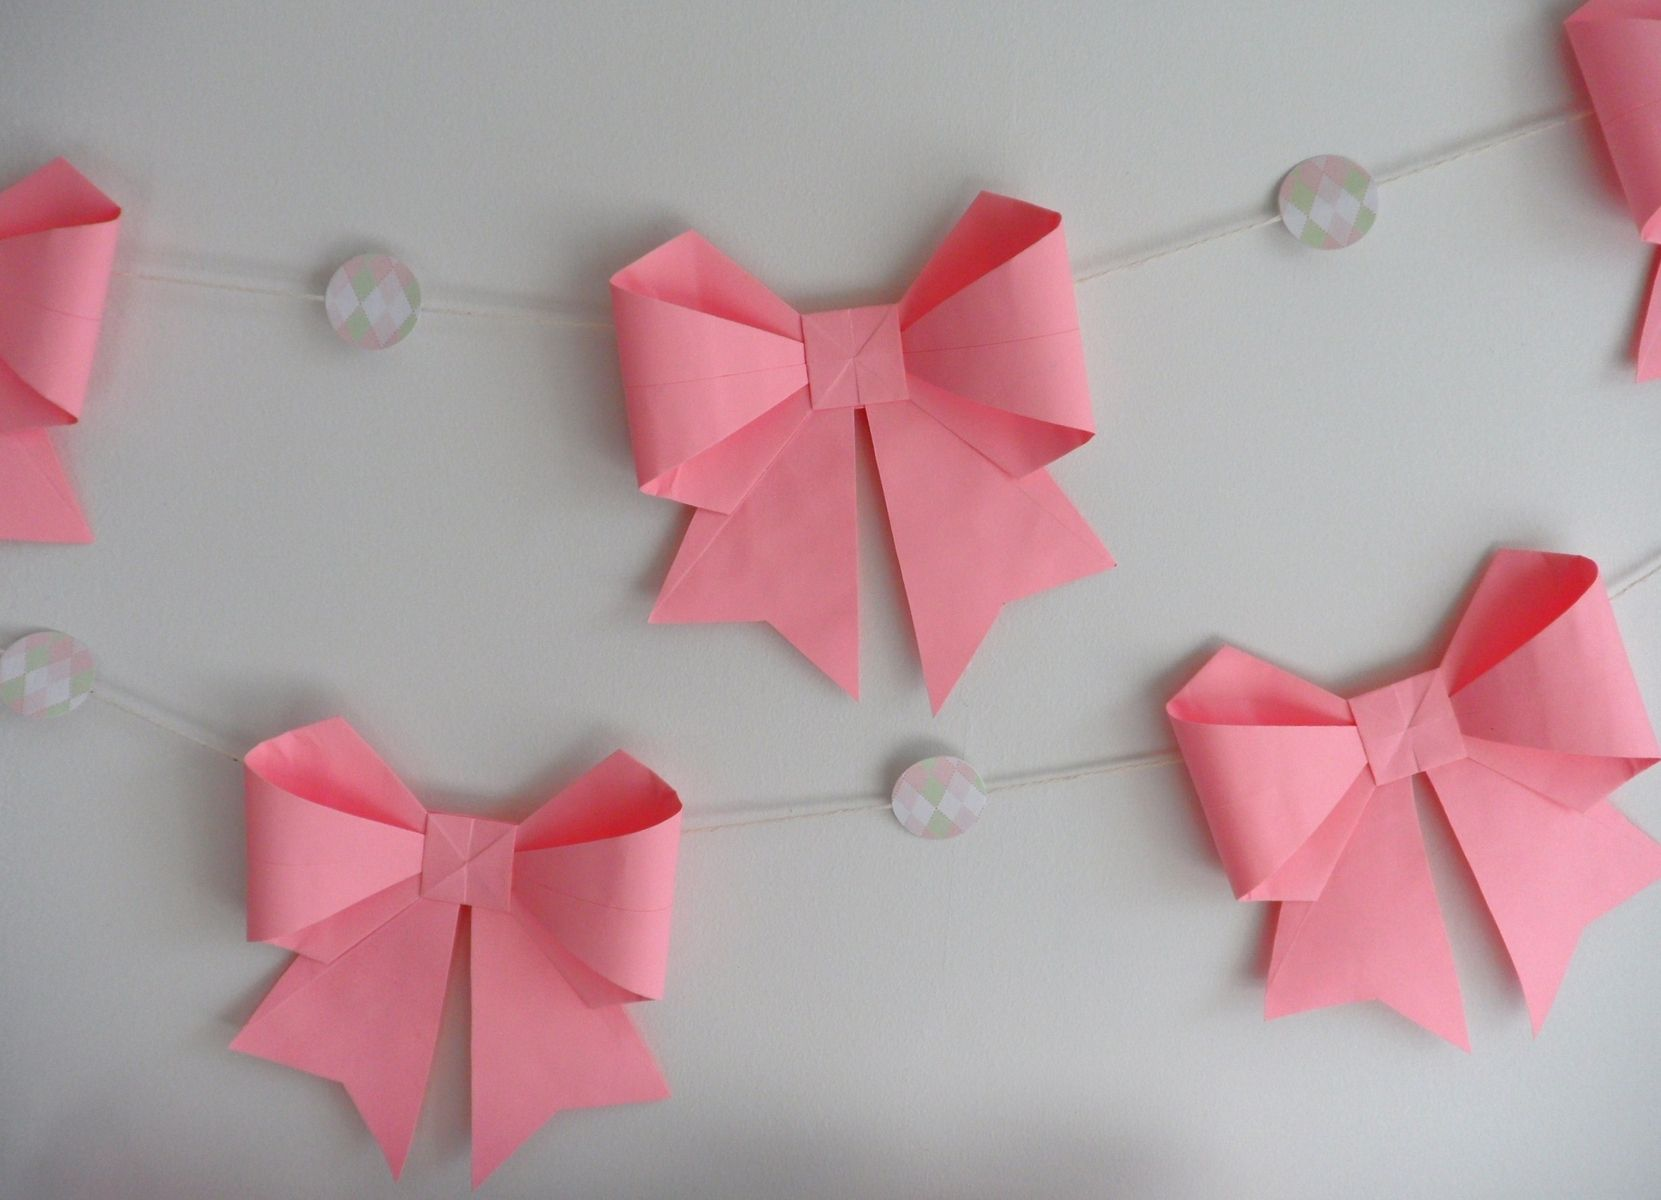 Custom Made 10 Ft Pink Paper Origami Bows Garland by Dear Betsy ...